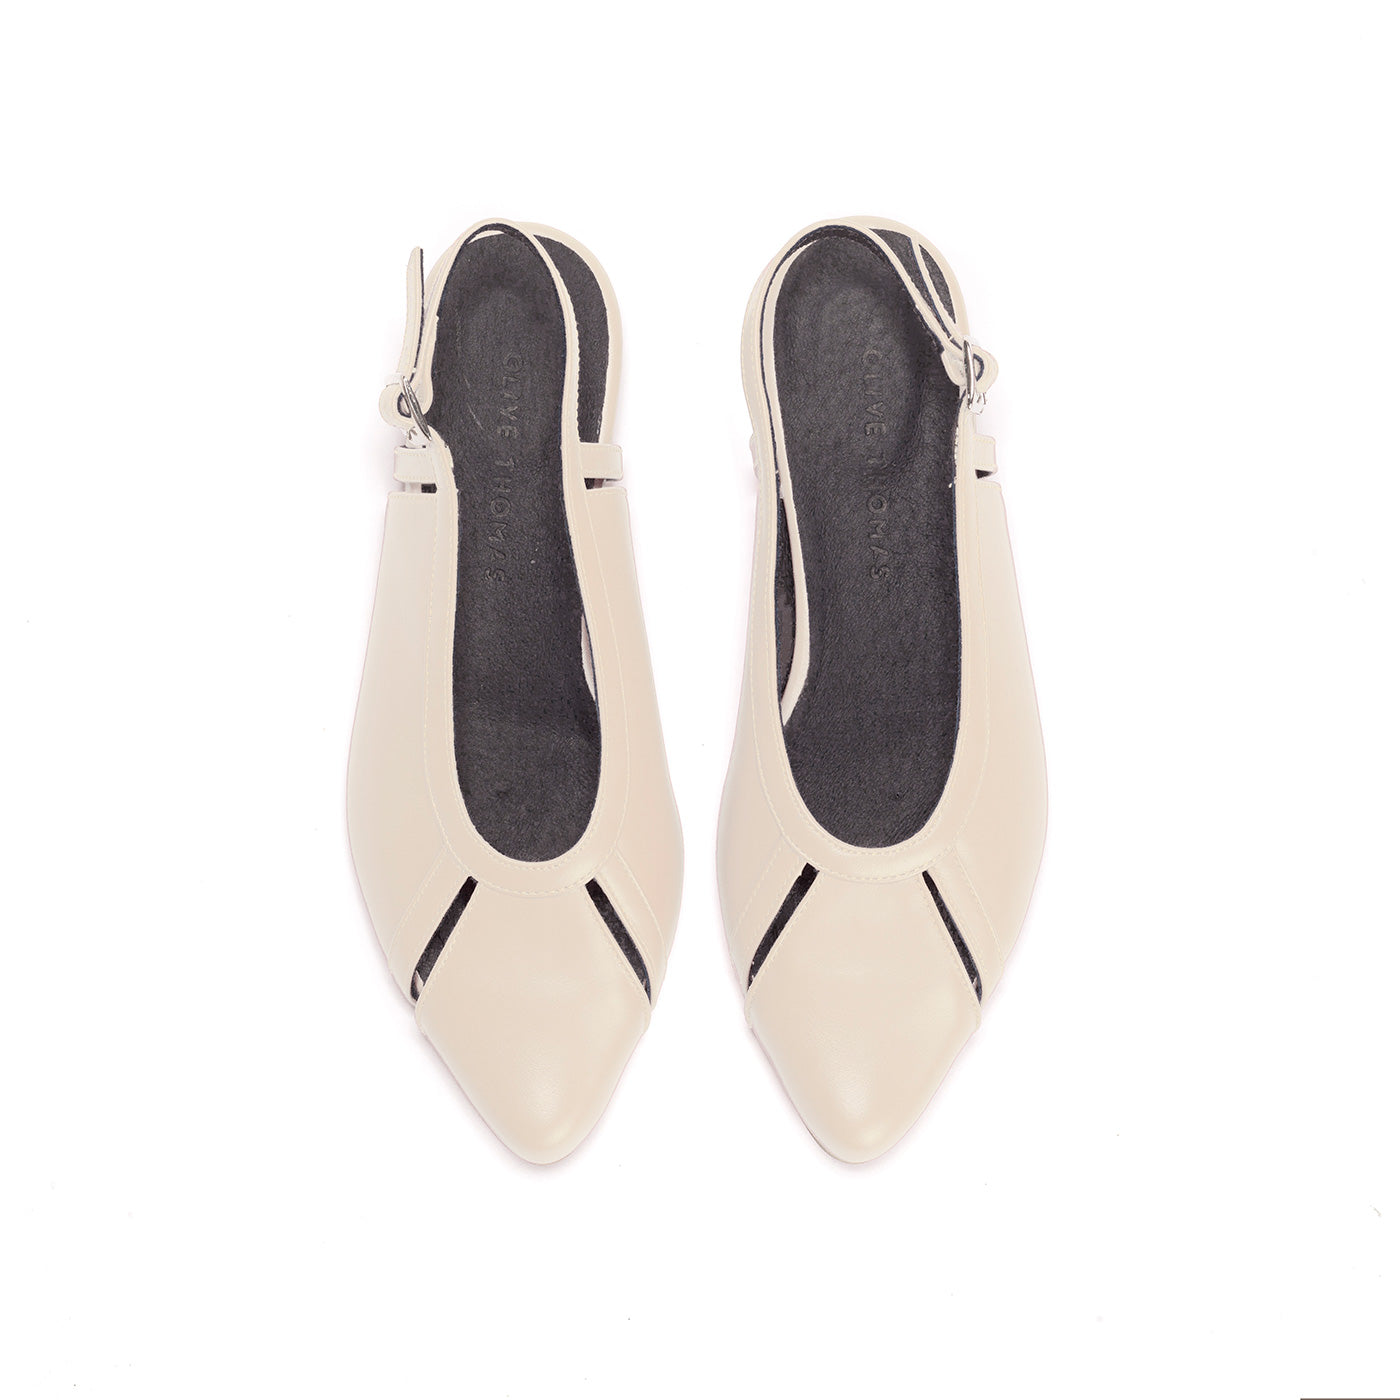 Clio - Pointed Toe Flats